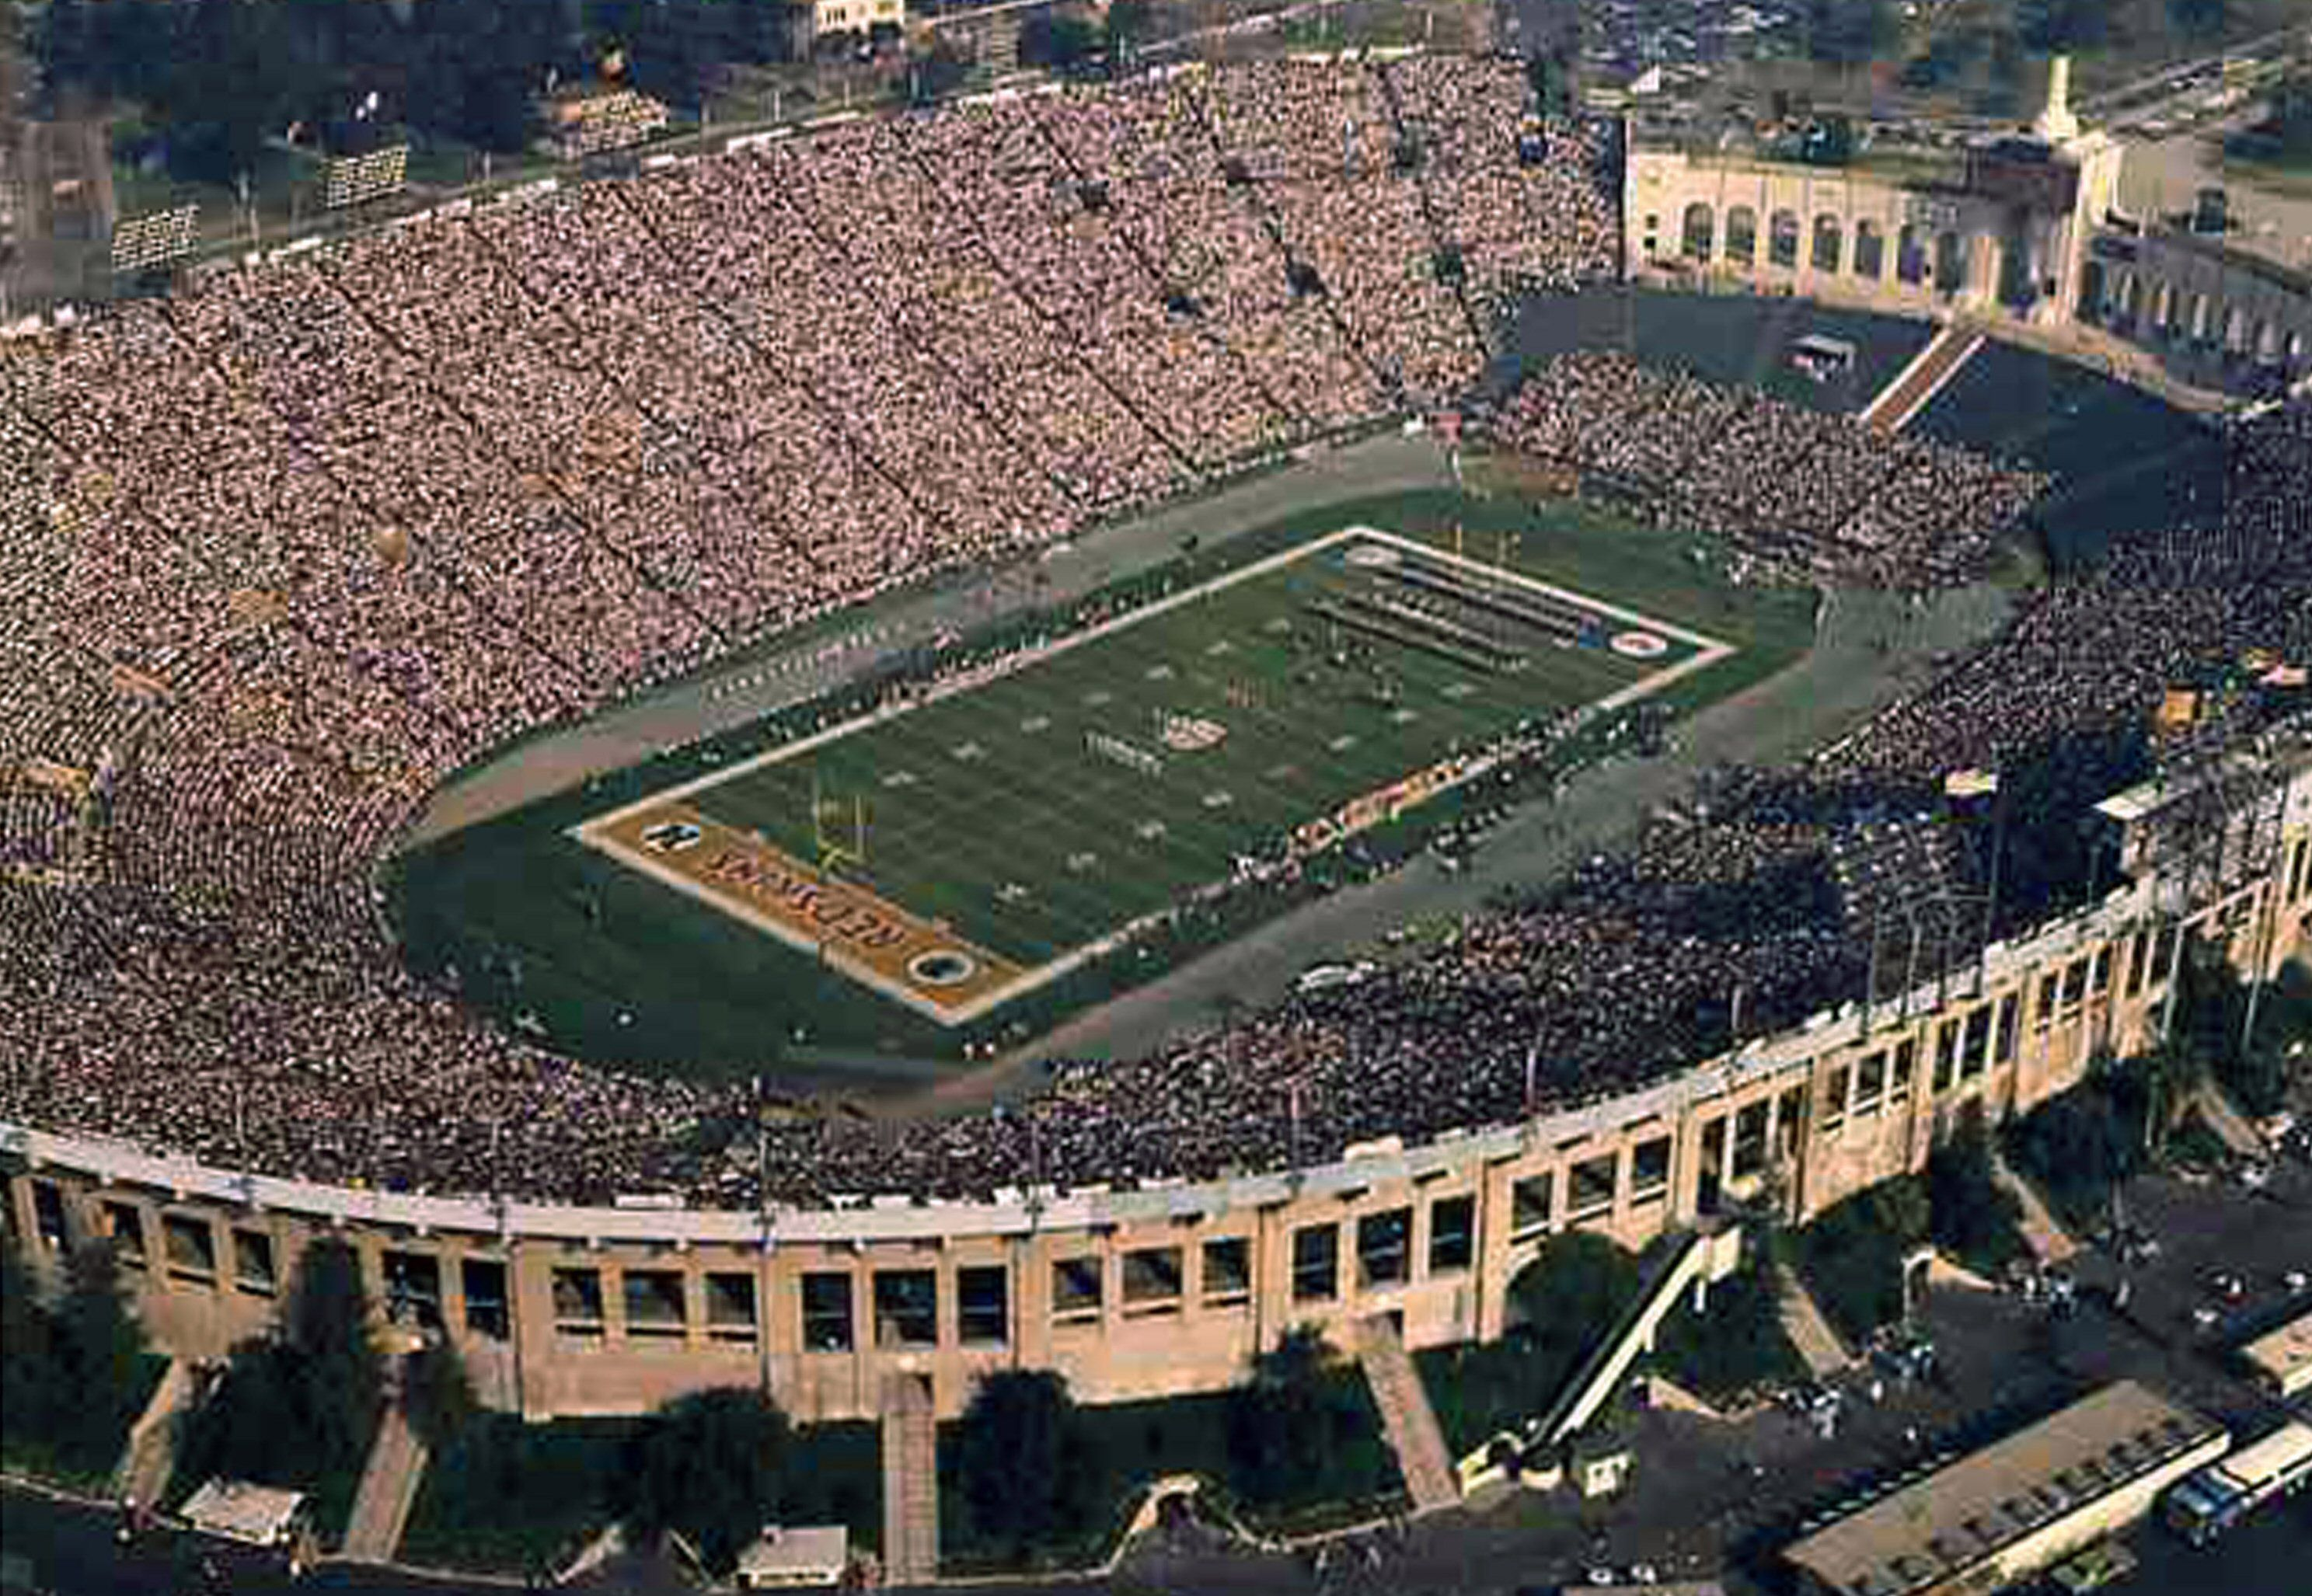 Aerial photo of open air Los Angeles Coliseum, California, site of 1973  Super Bowl